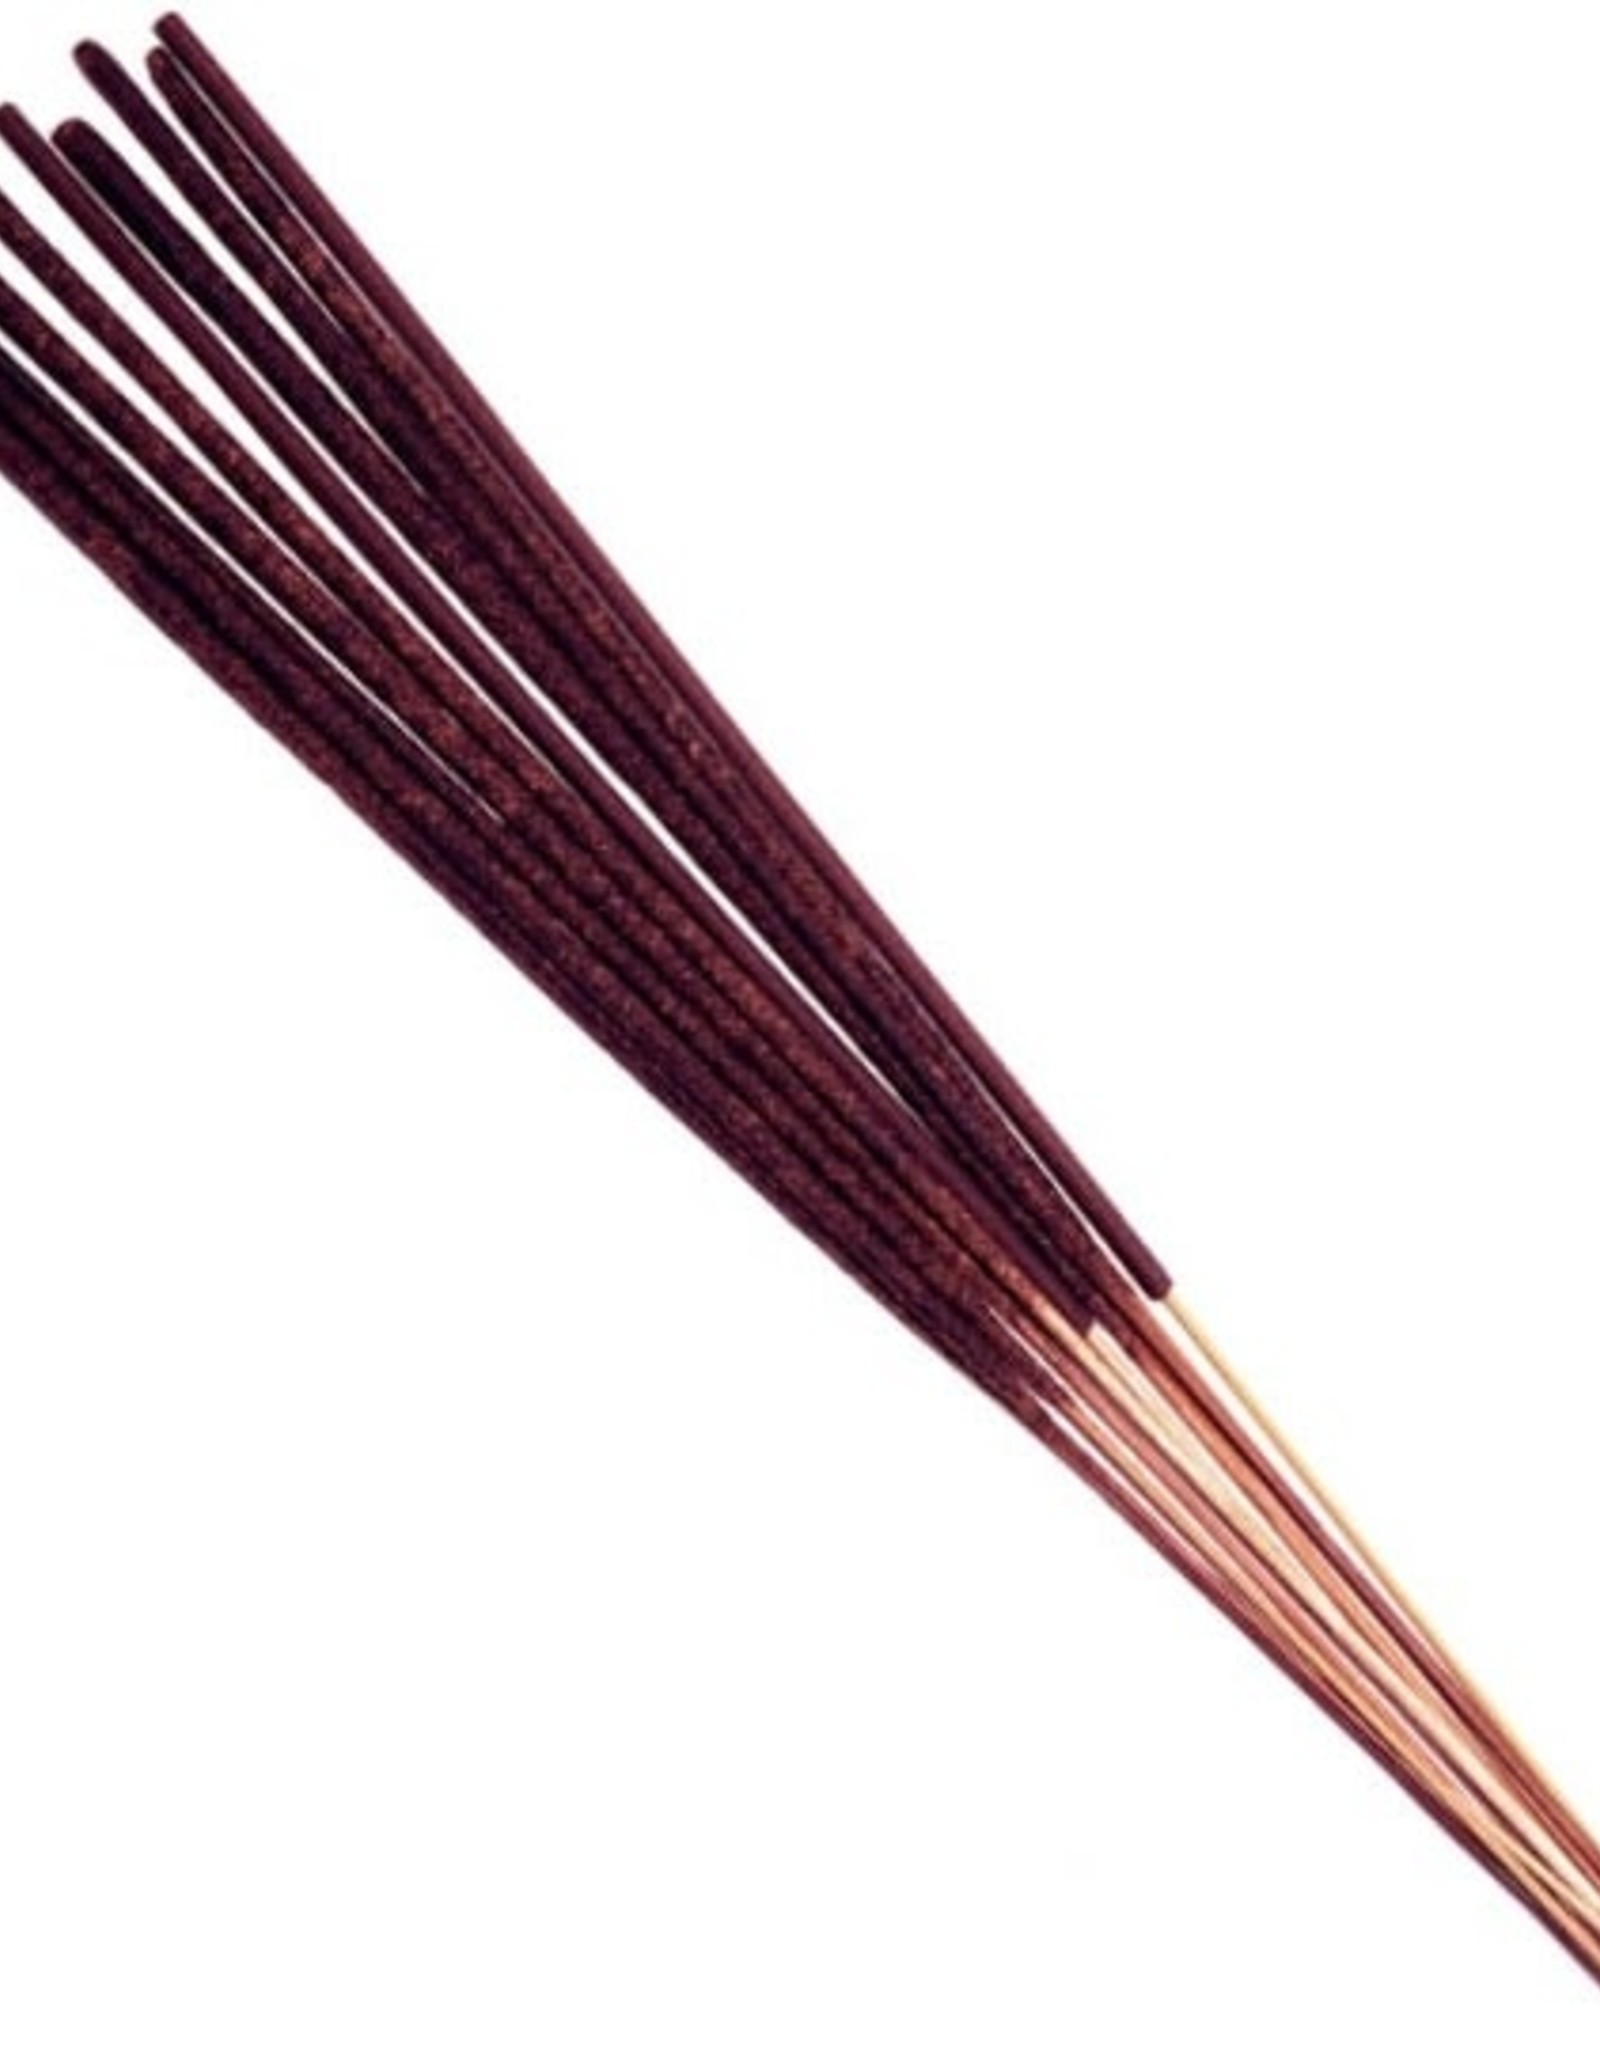 misc goods company UnderHill Incense